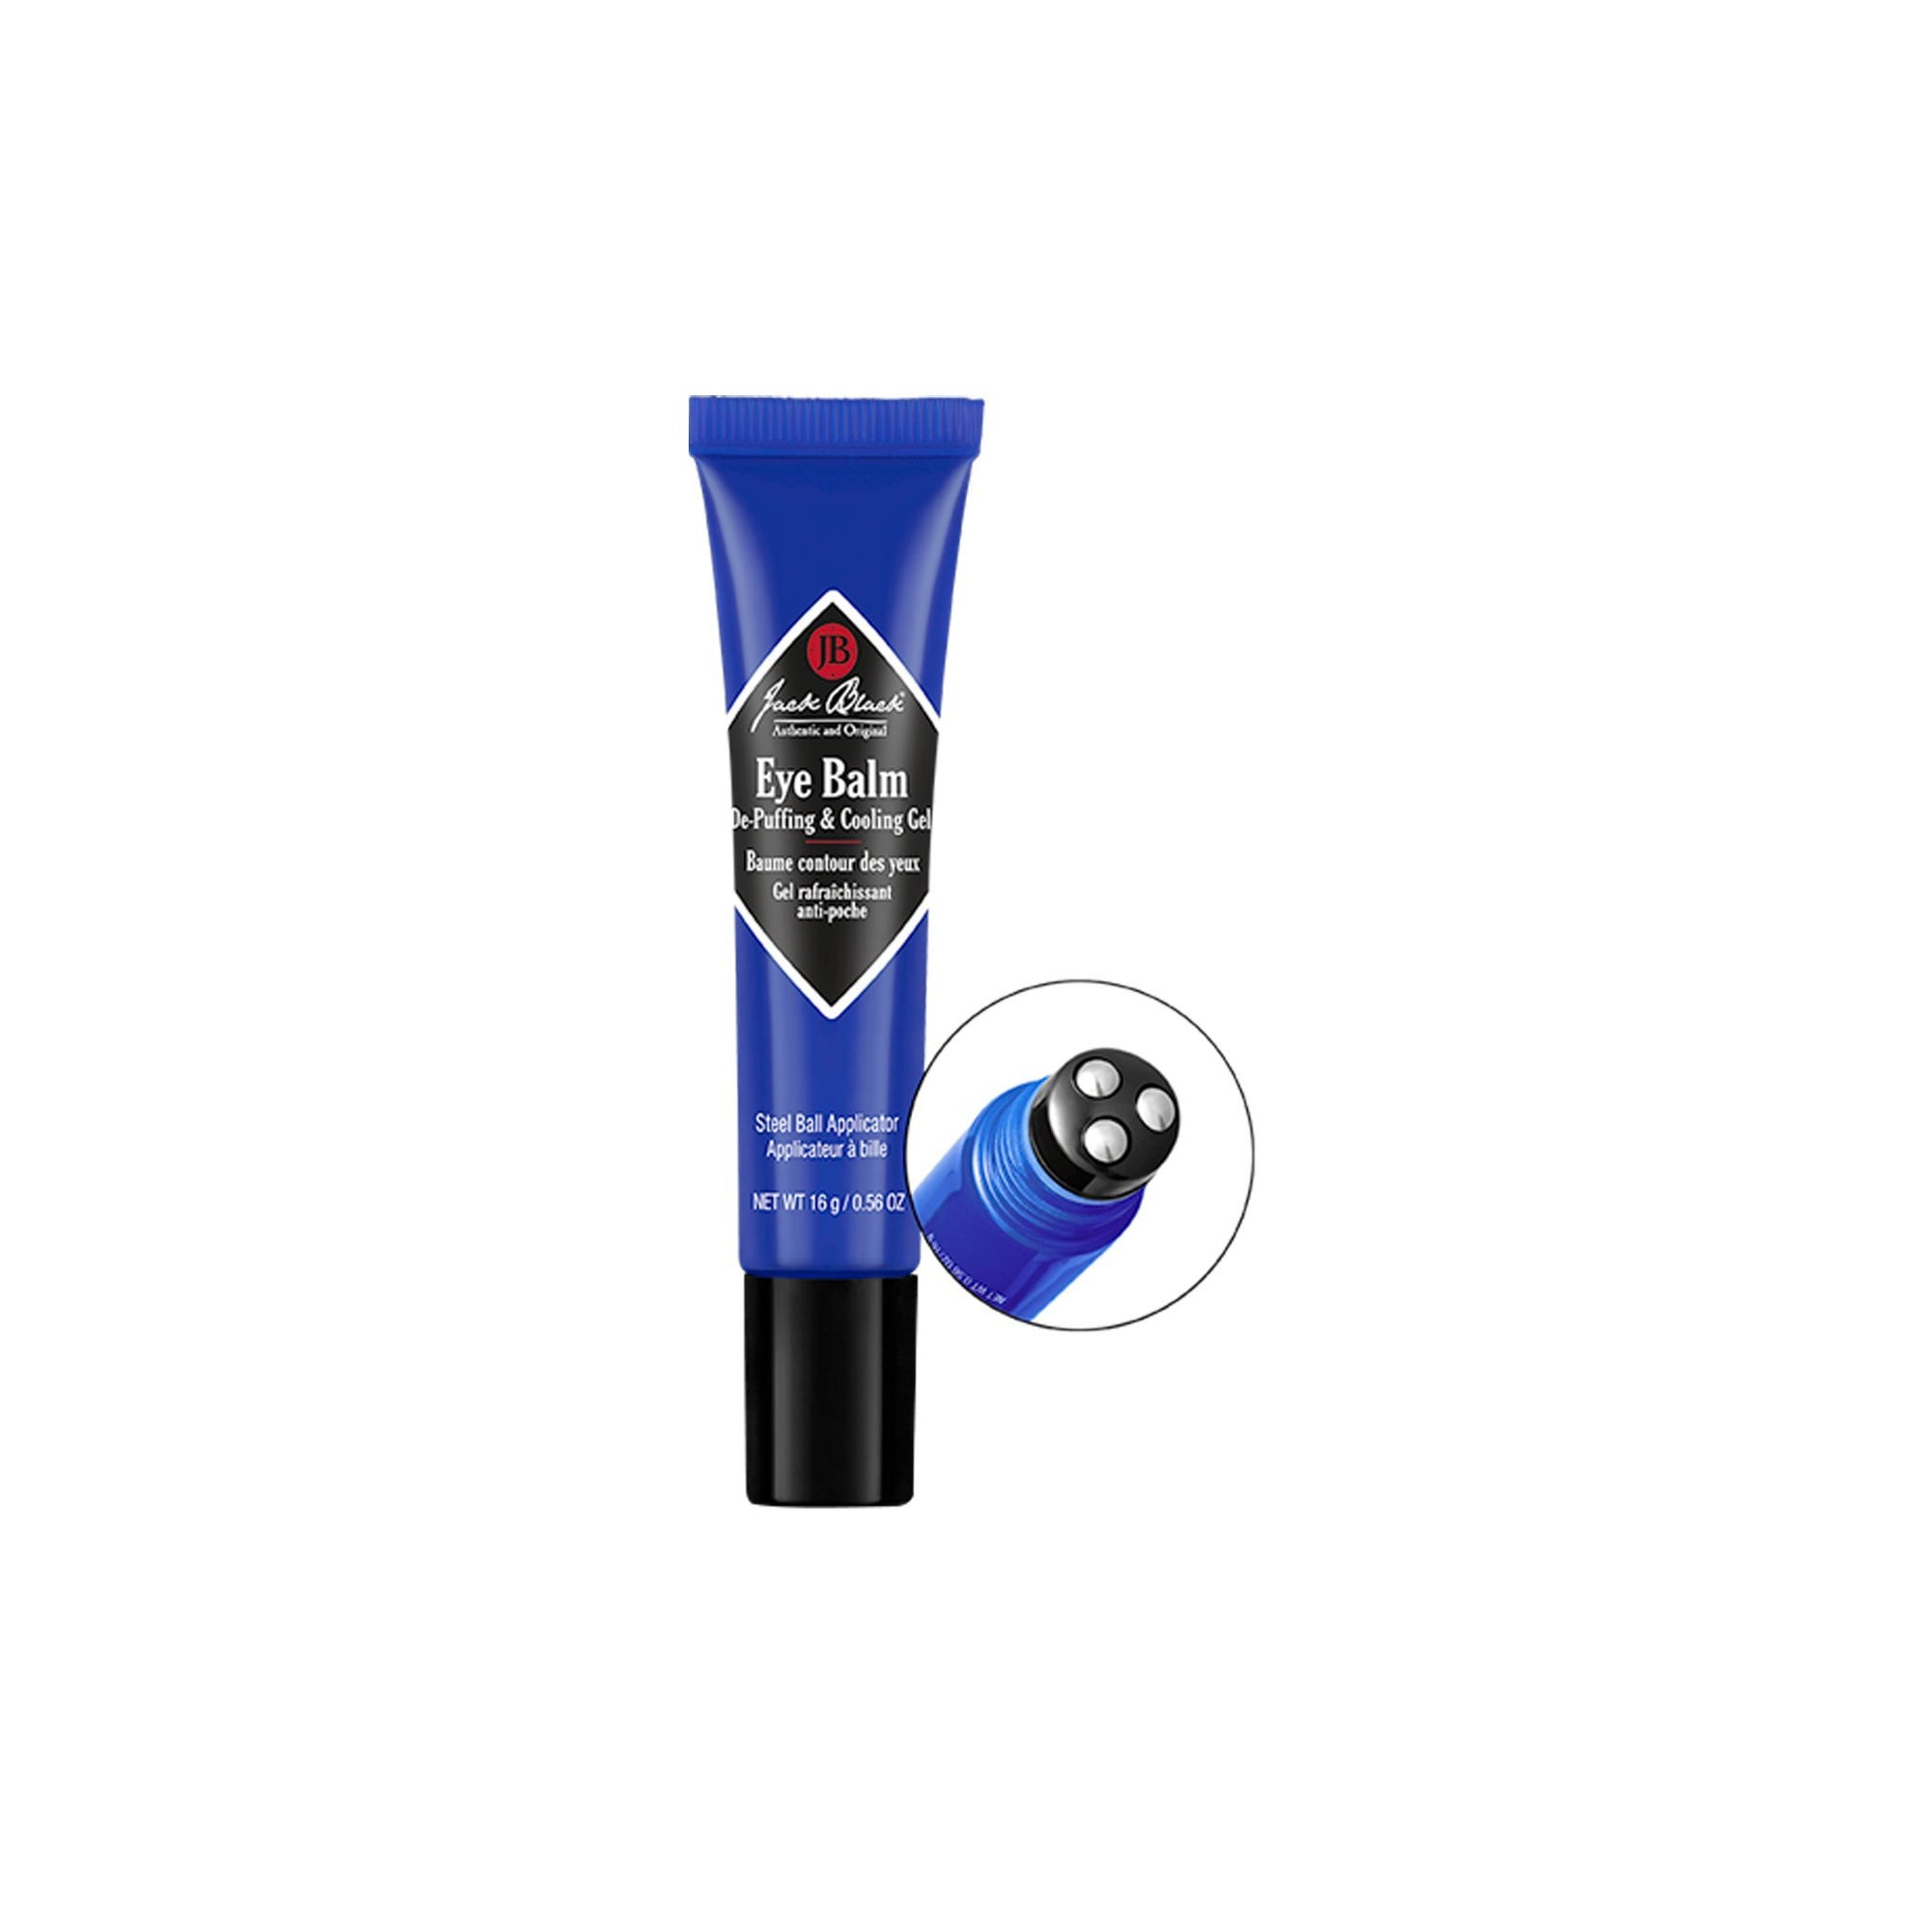 Jack Black Eye Balm De-Puffing & Cooling Gel 15ml